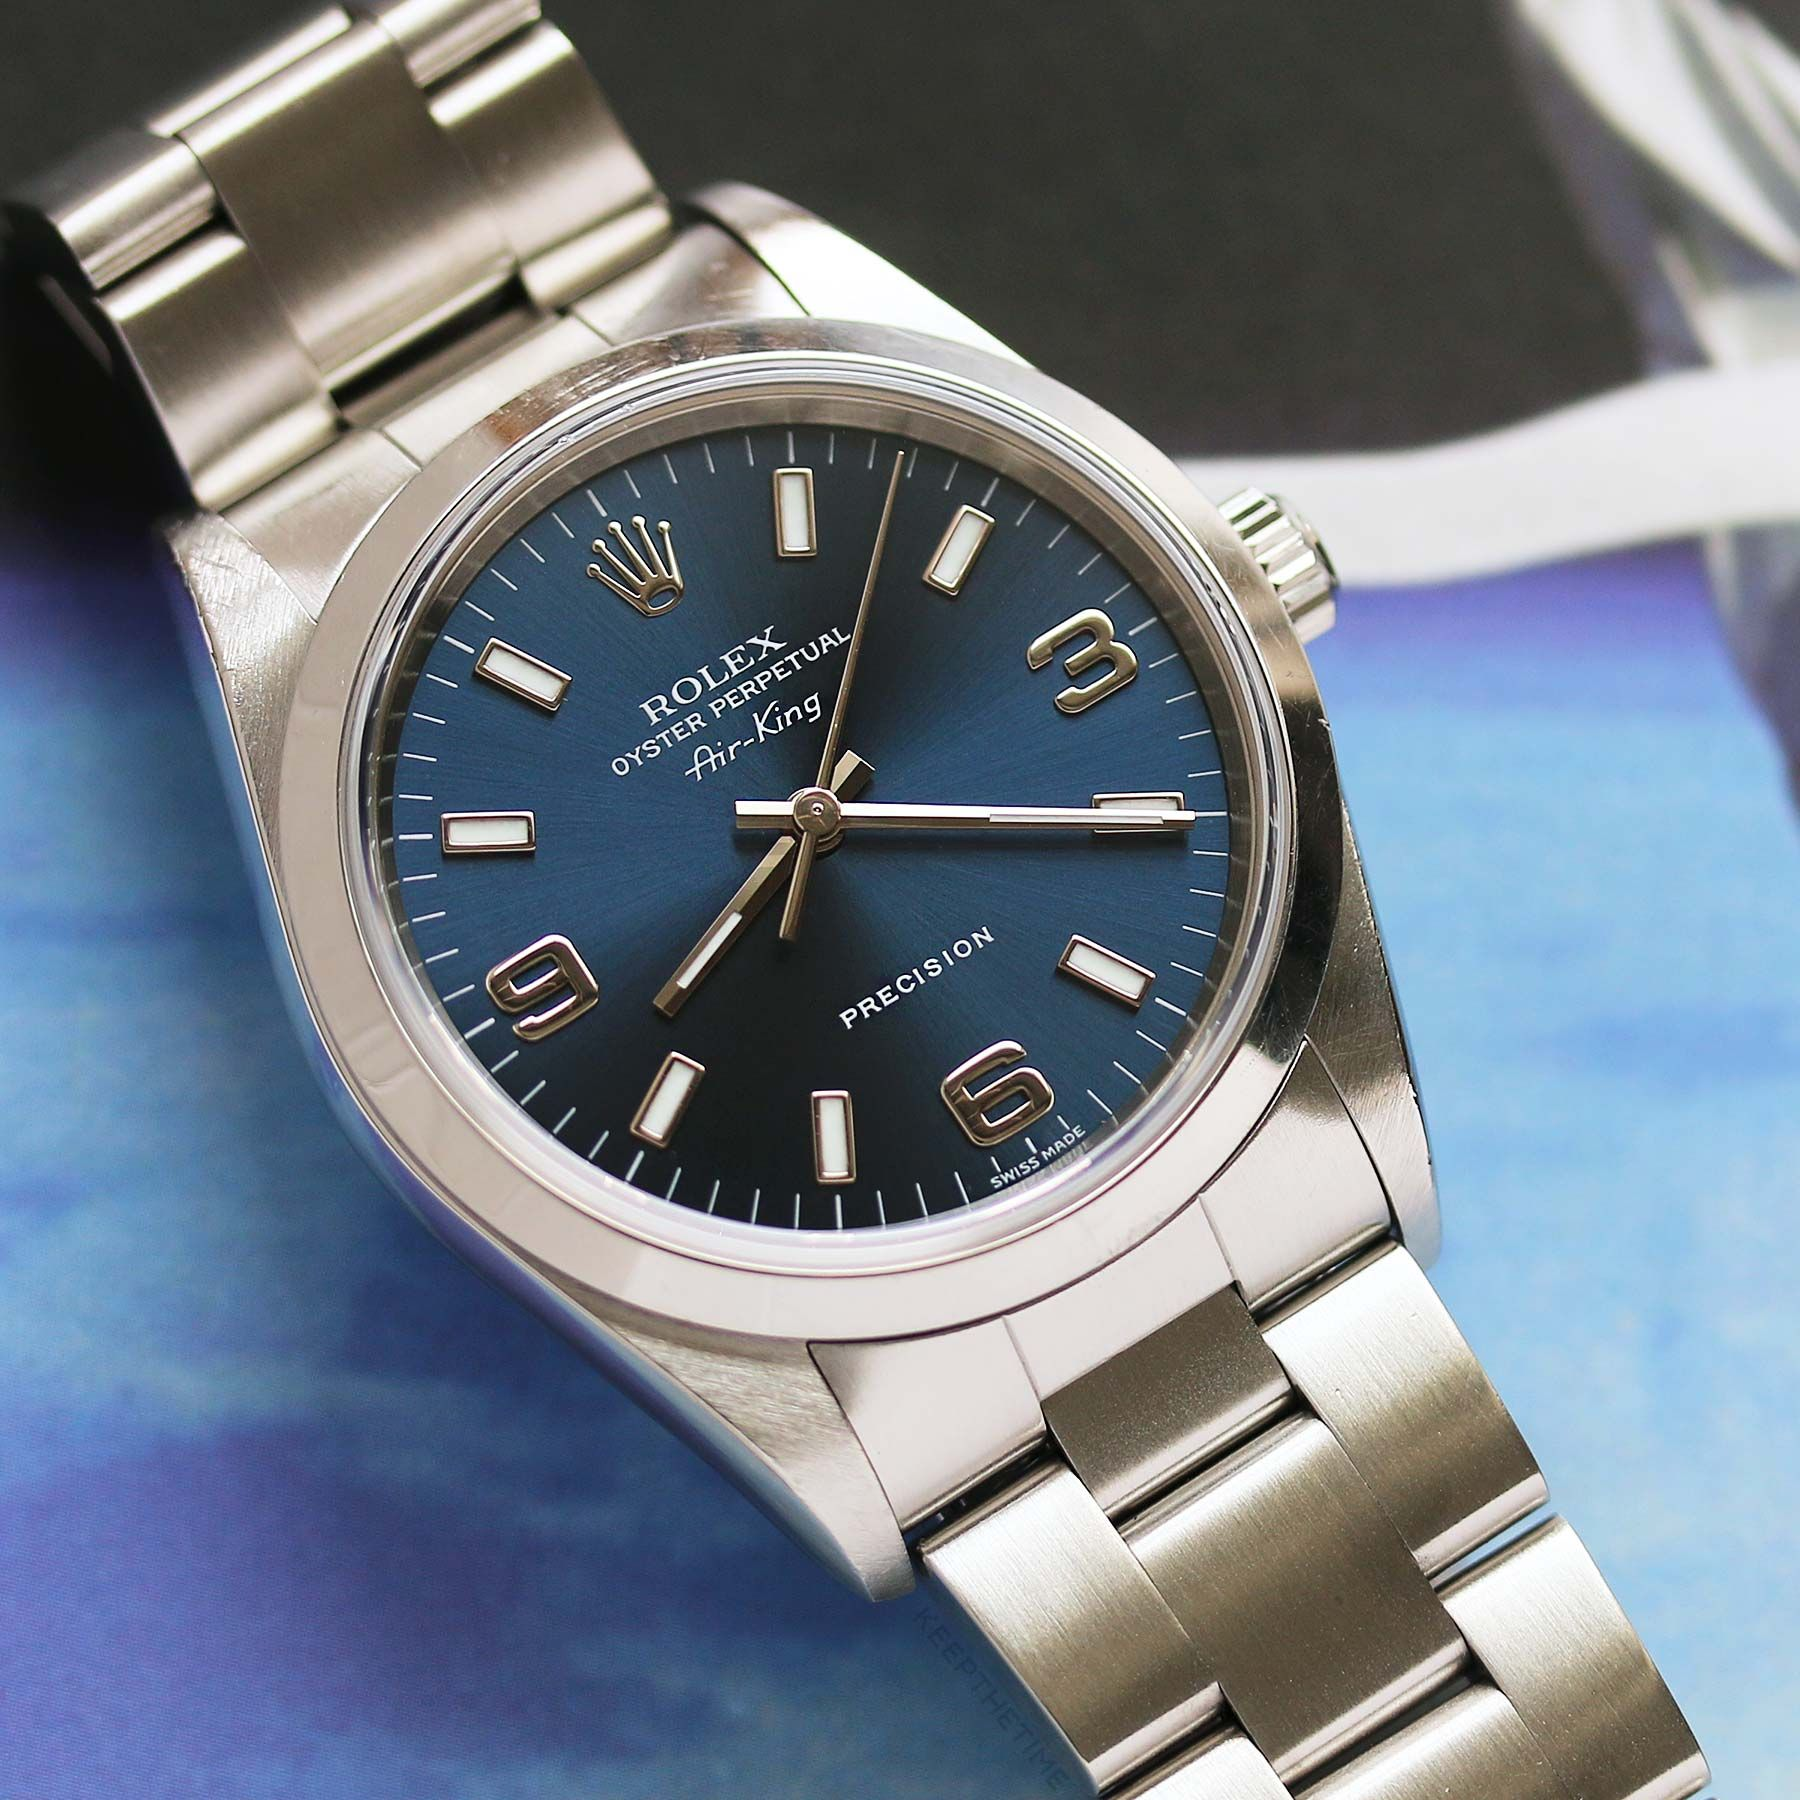 Rolex AirKing 14000 in 2020 Rolex air king, Rolex